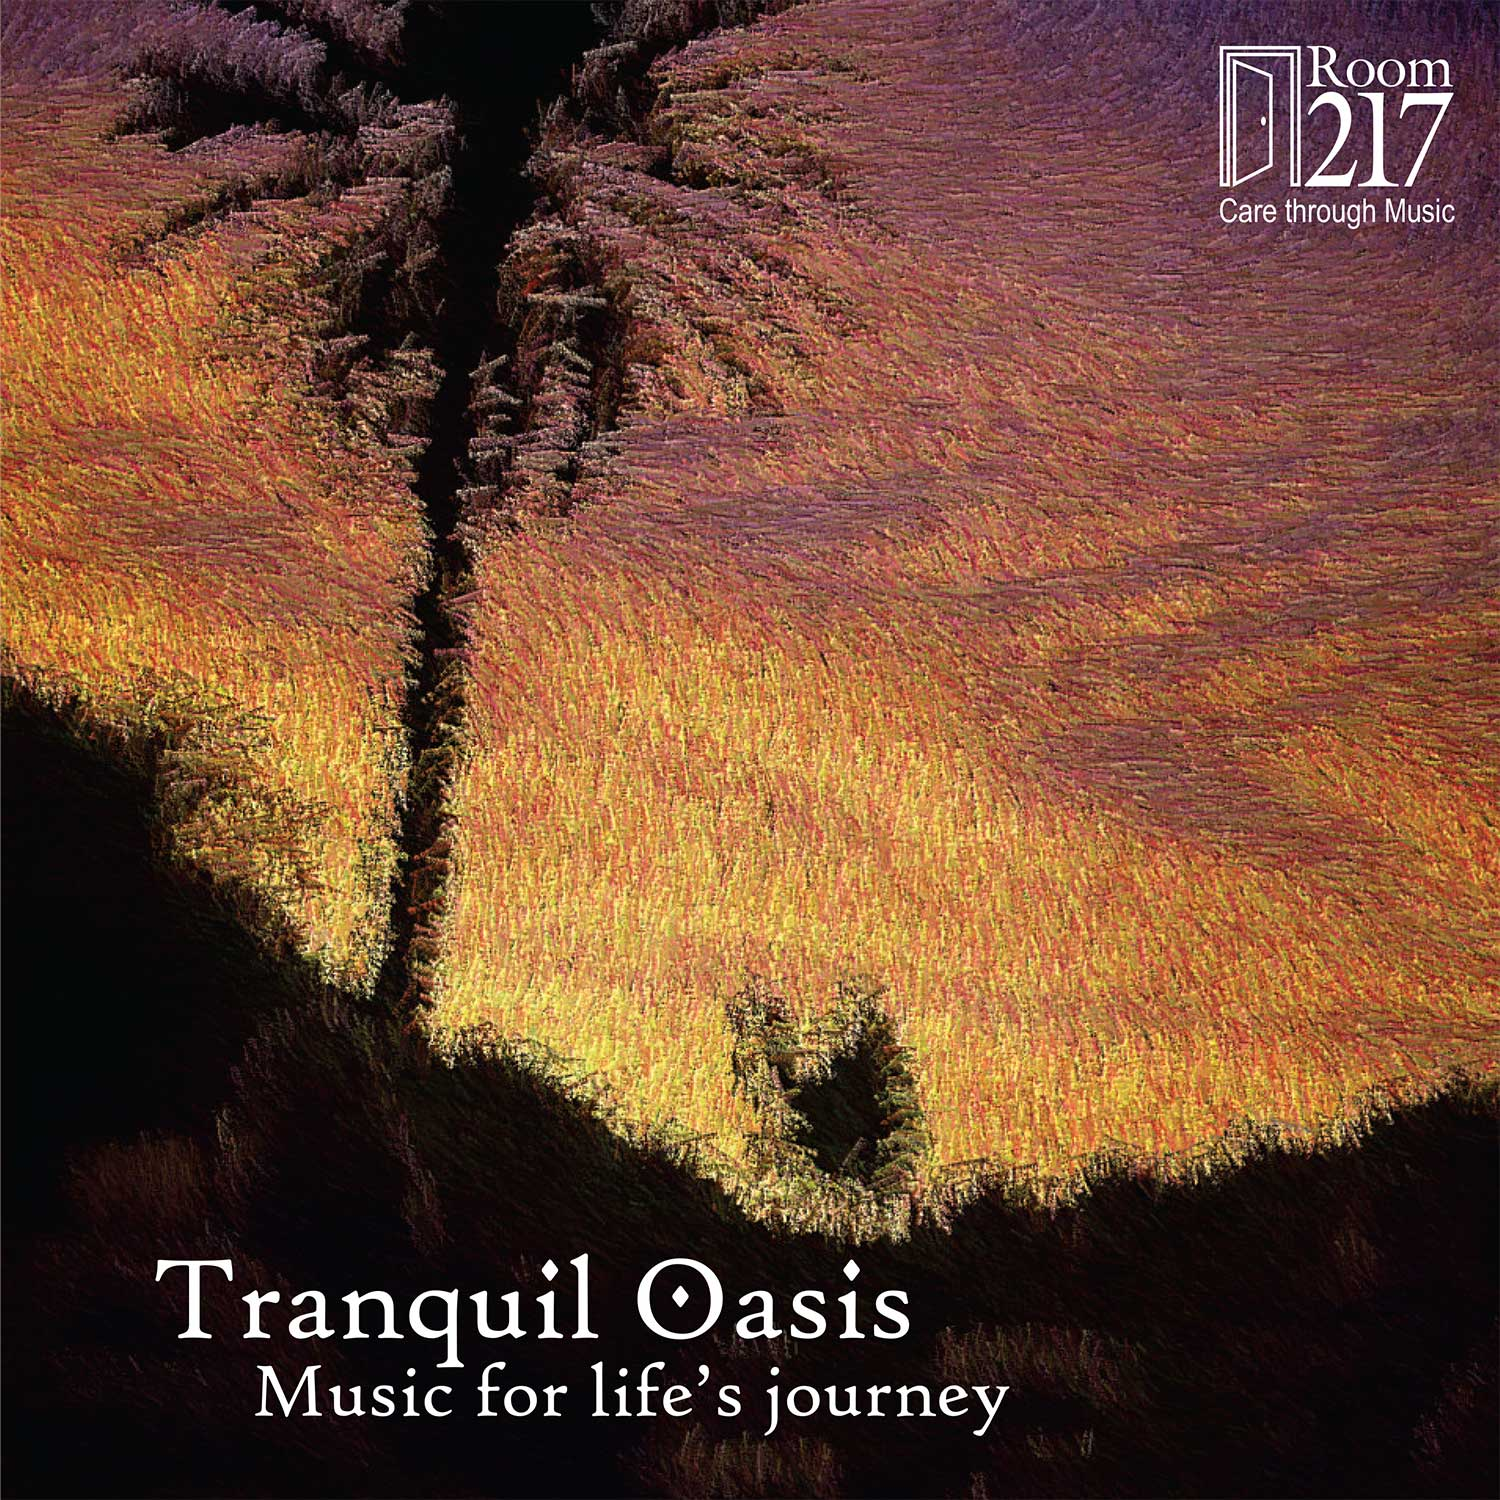 Room 217 – Tranquil Oasis - Album art